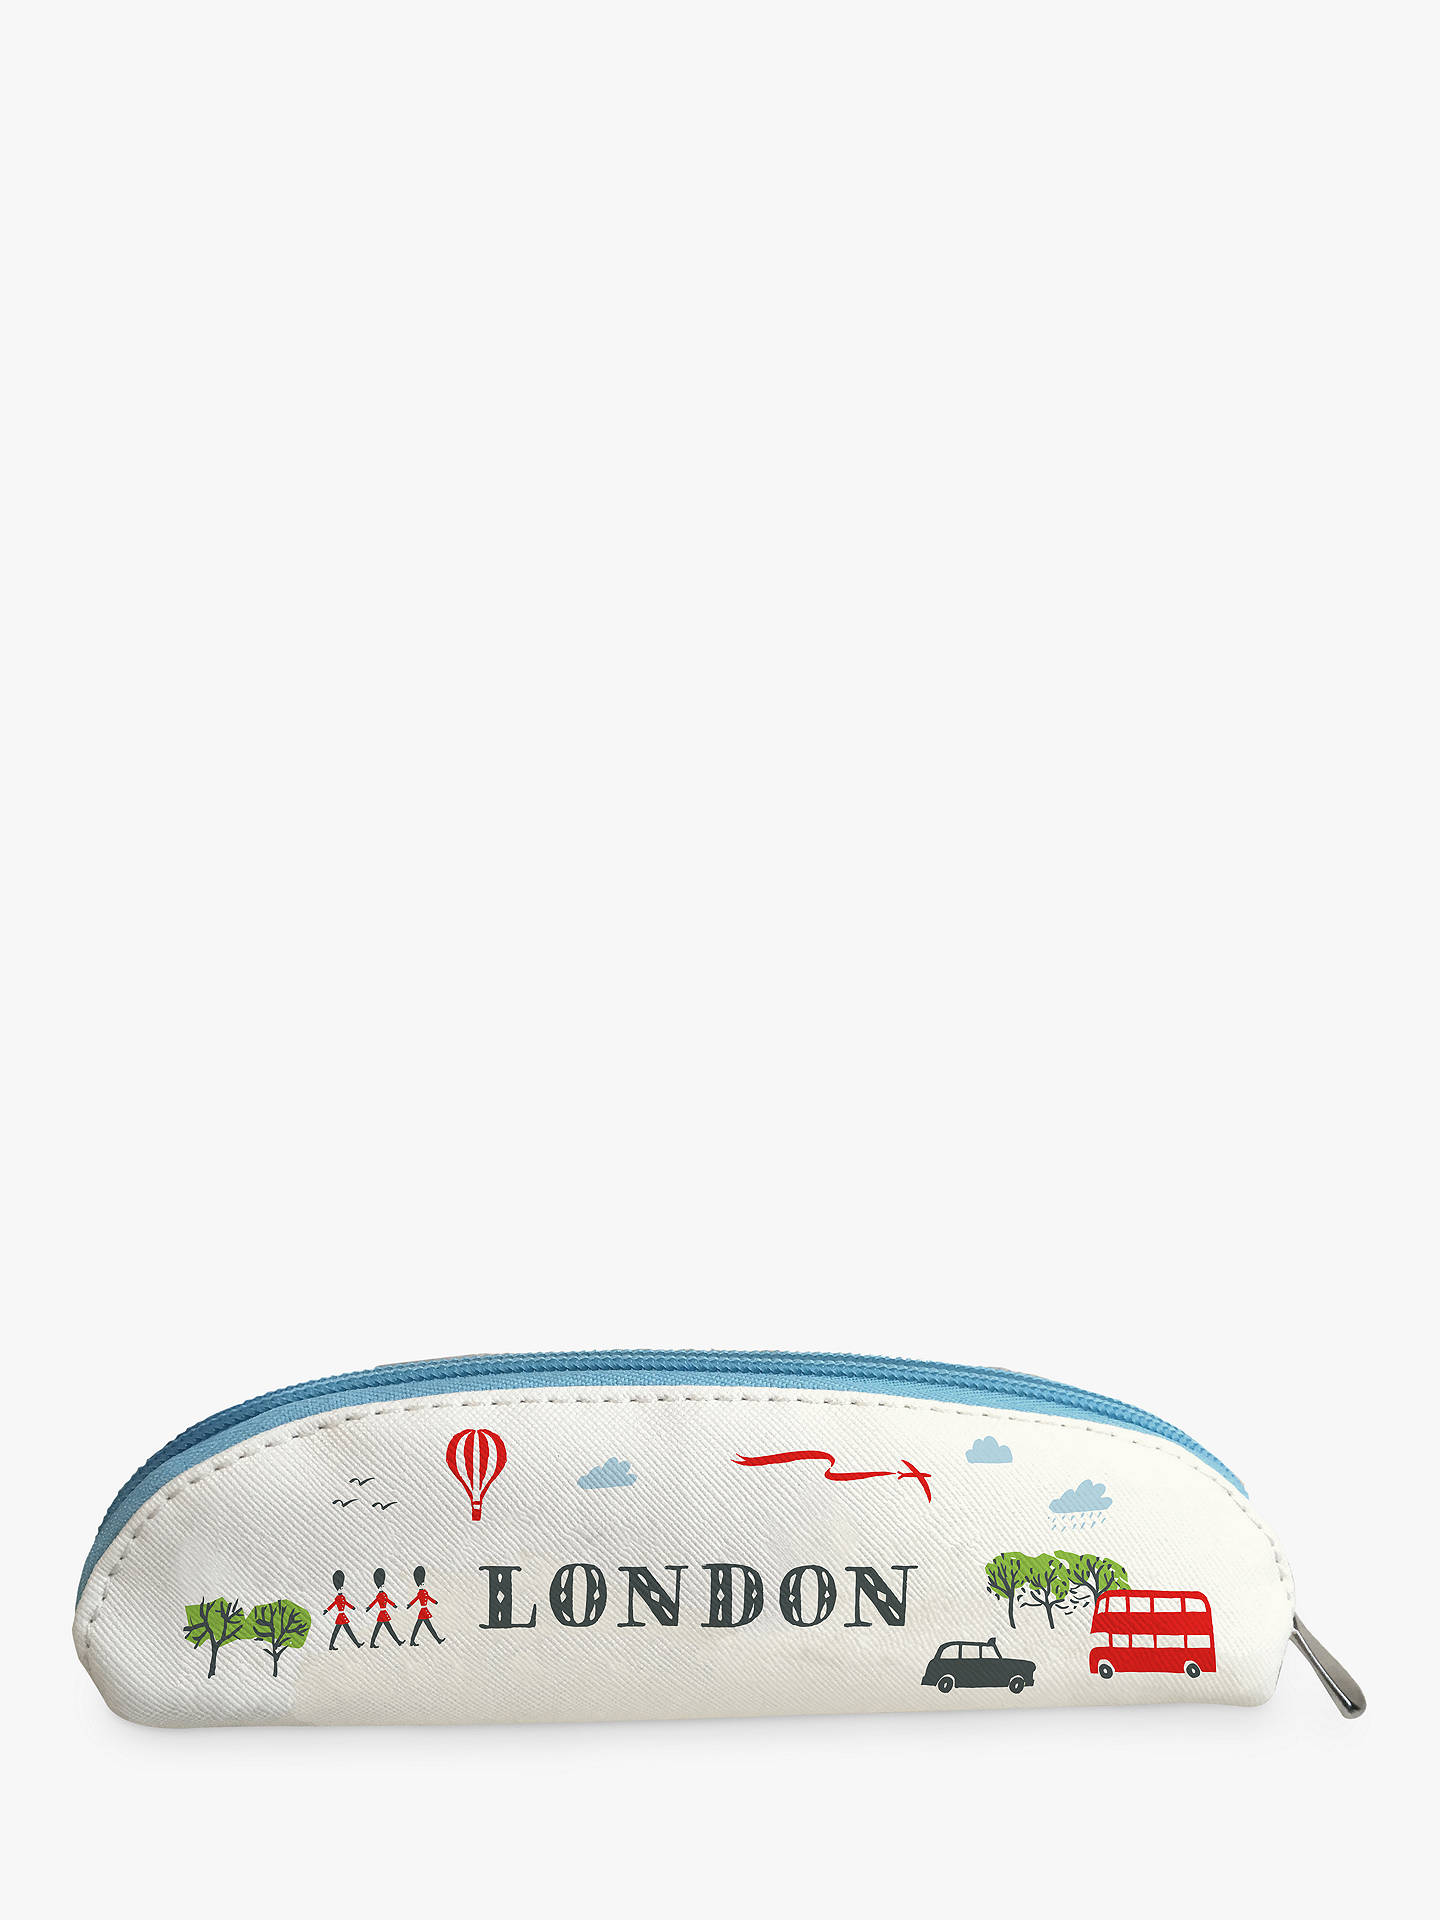 Buy Alice Tait London Pencil Case Online at johnlewis.com